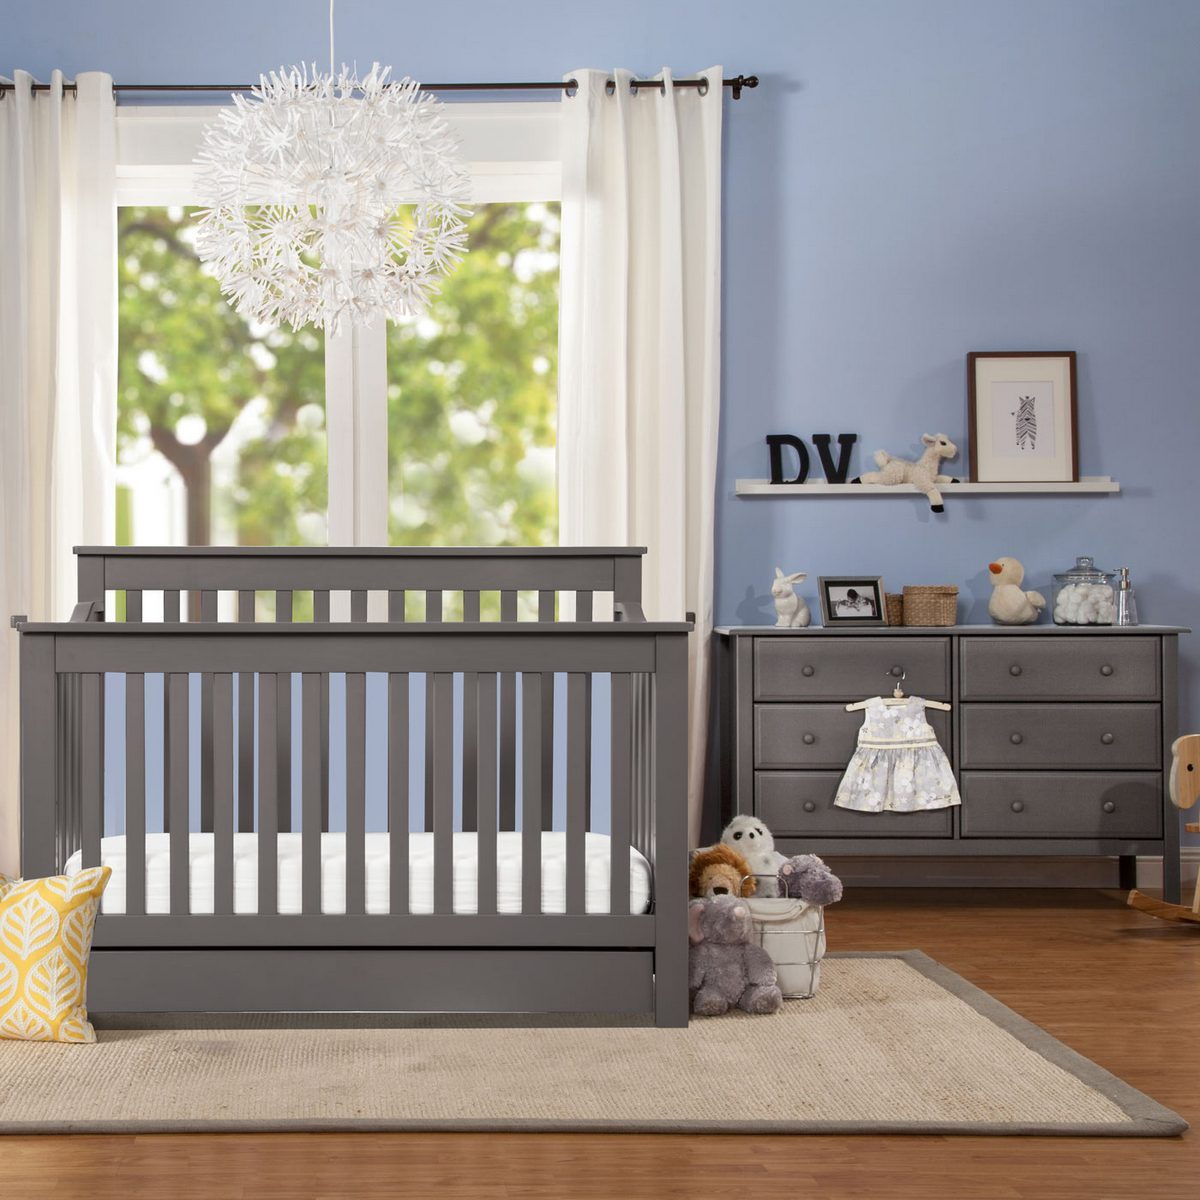 Davinci Kalani Dresser | Davinci Kalani 4 in 1 | Crib and Changing Table Combo Buy Buy Baby